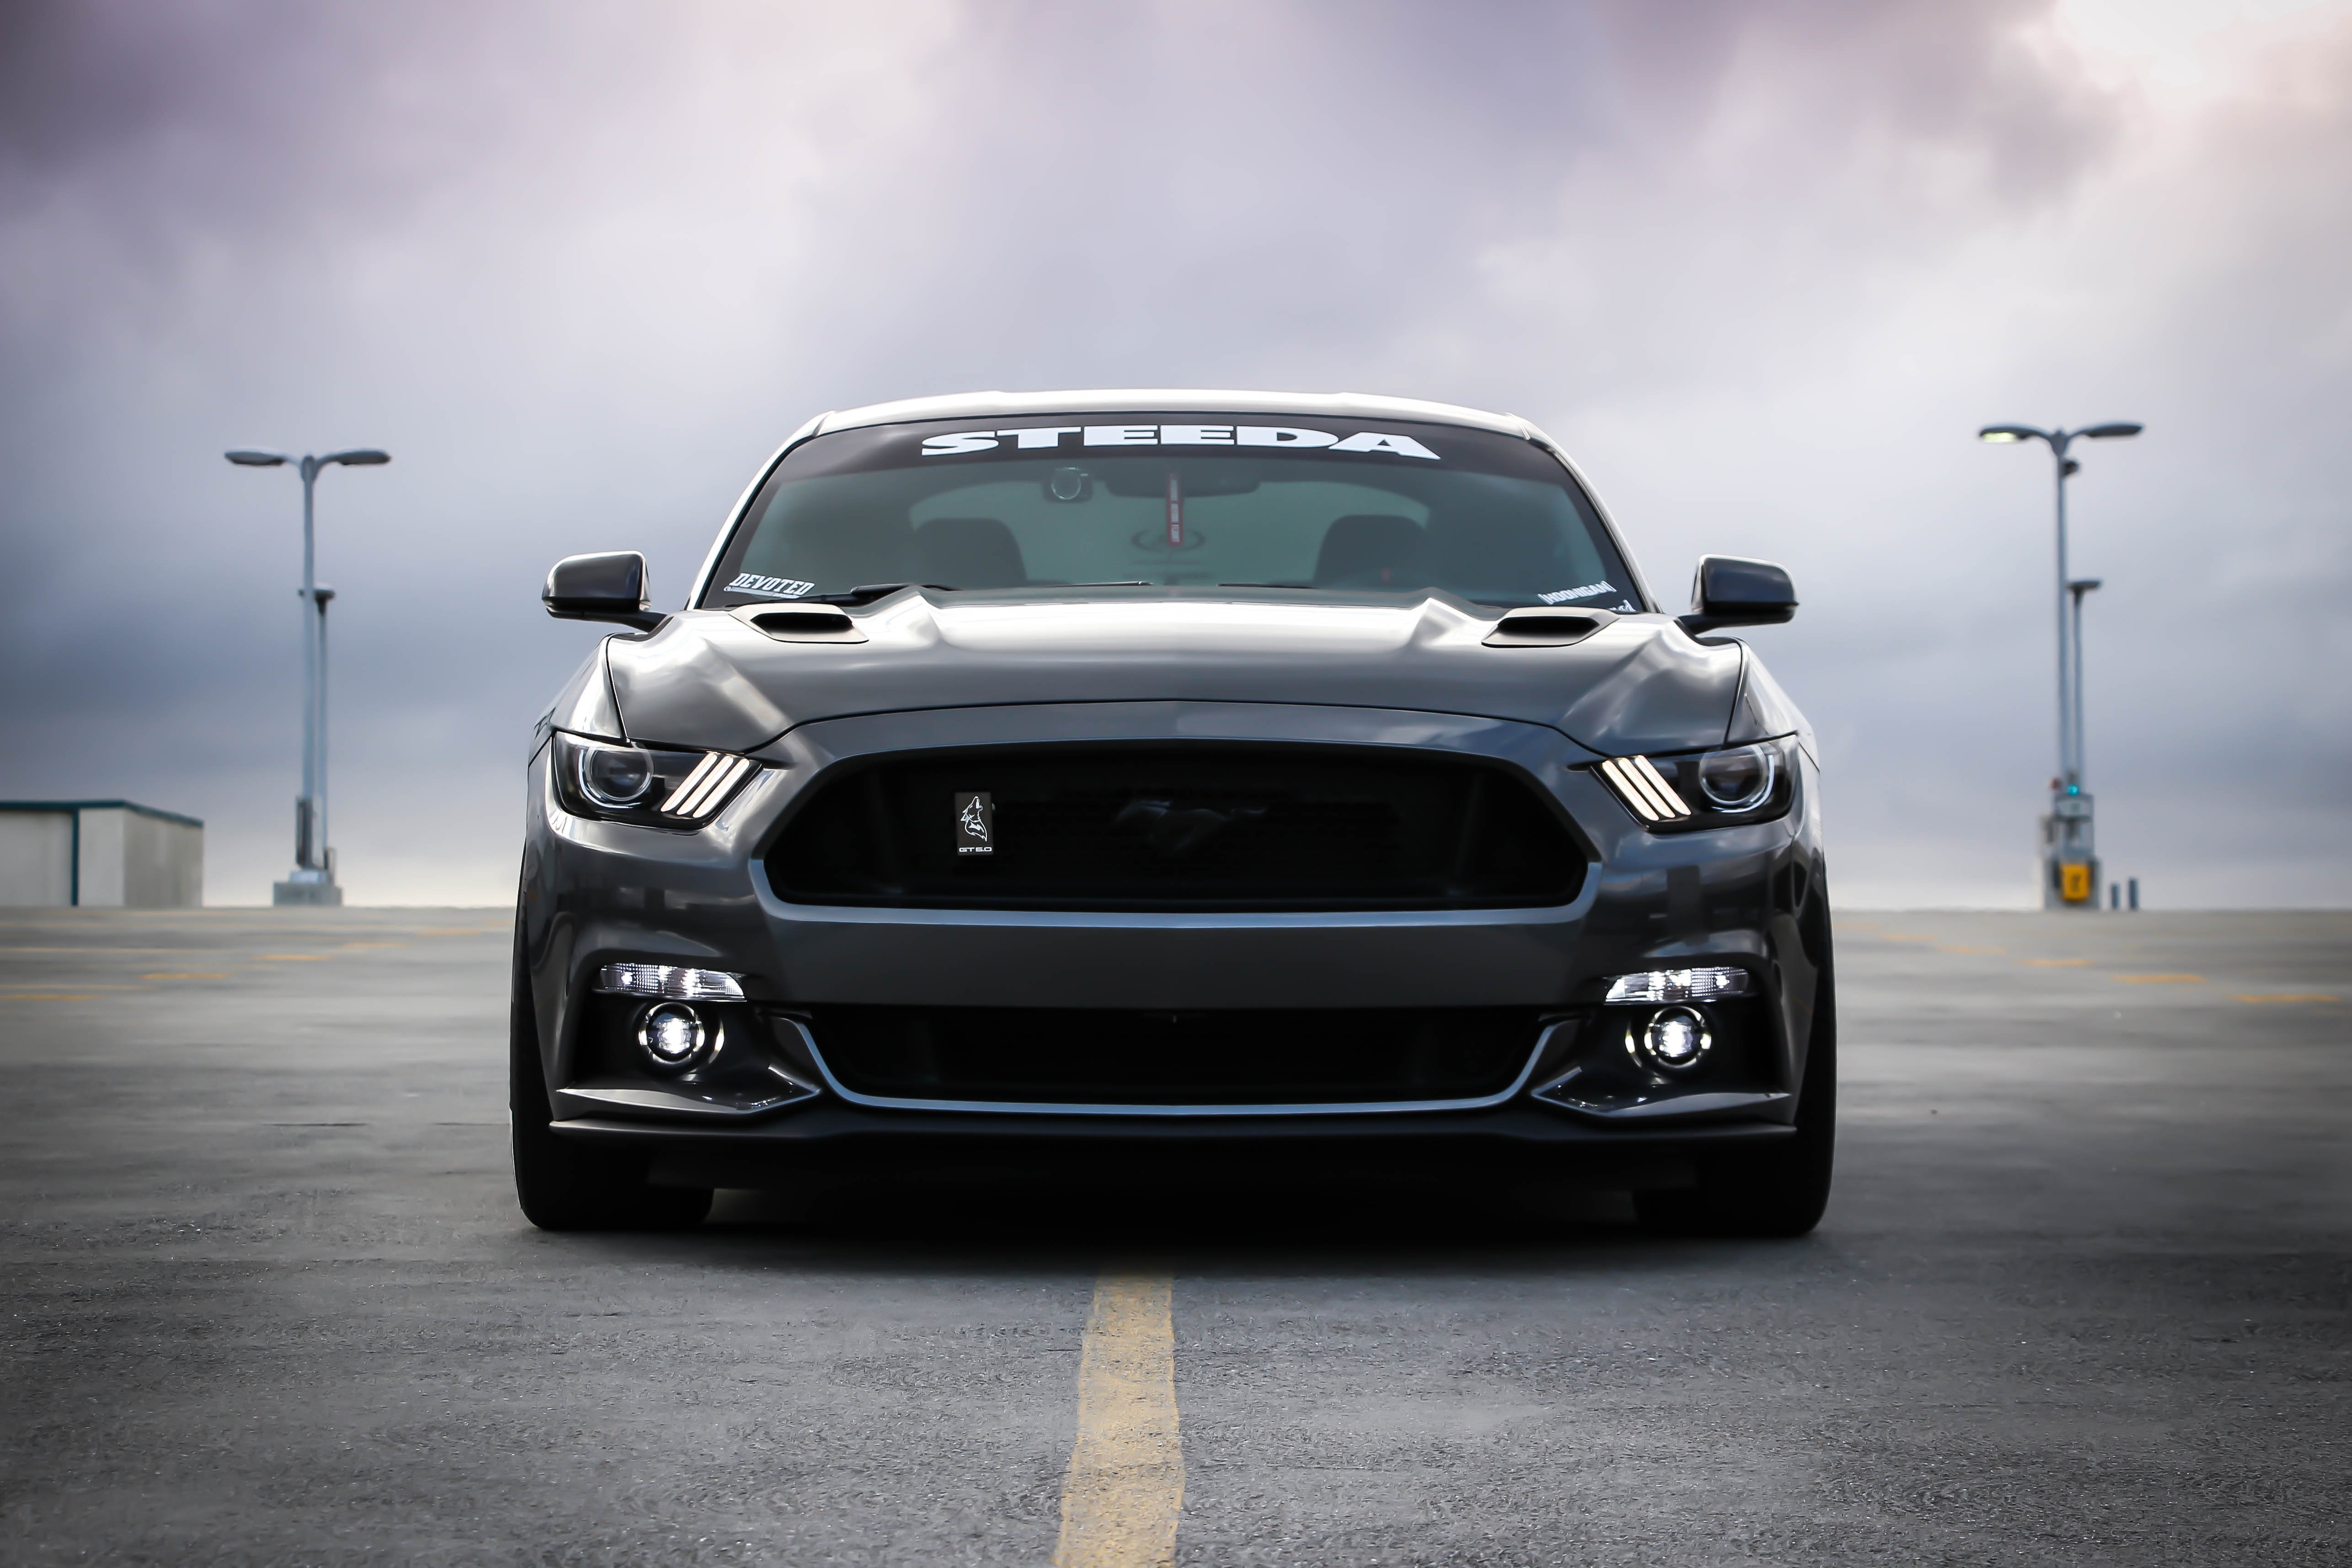 The front of a black 2016 Mustang GT